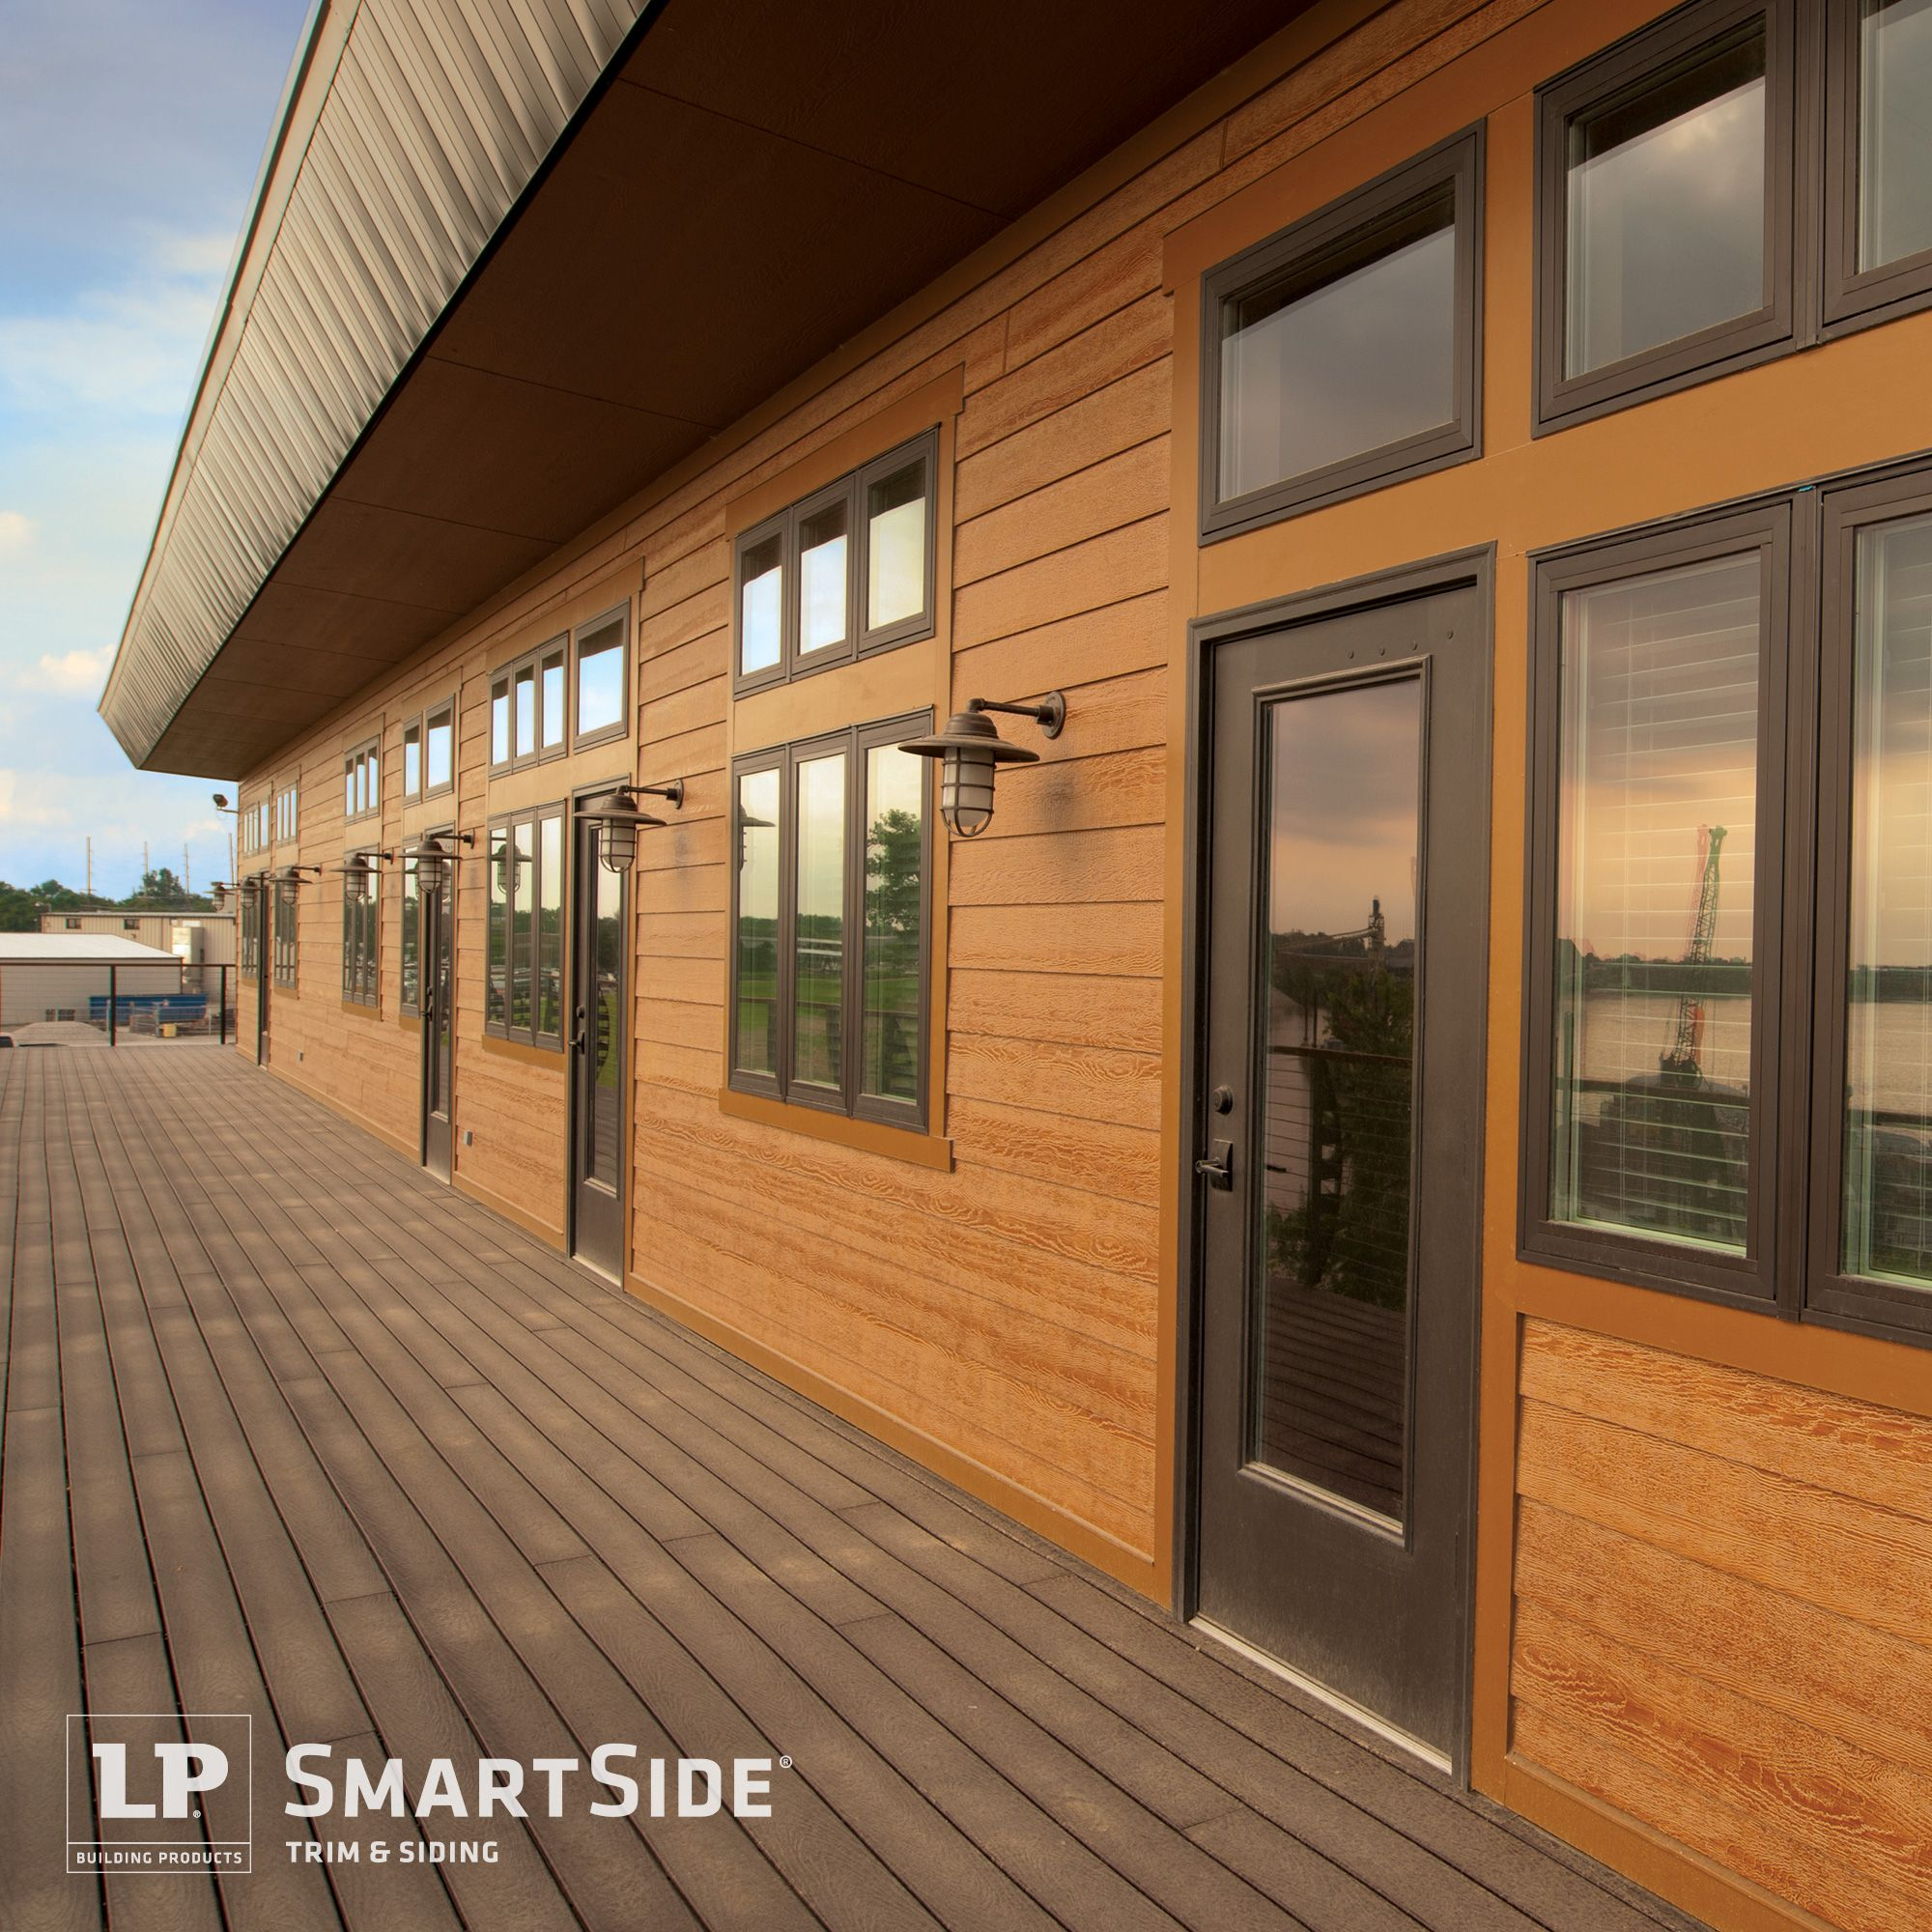 Lp Smartside Trim And Siding Products Aren 39 T Just For Homes You Can Give Your Business Or